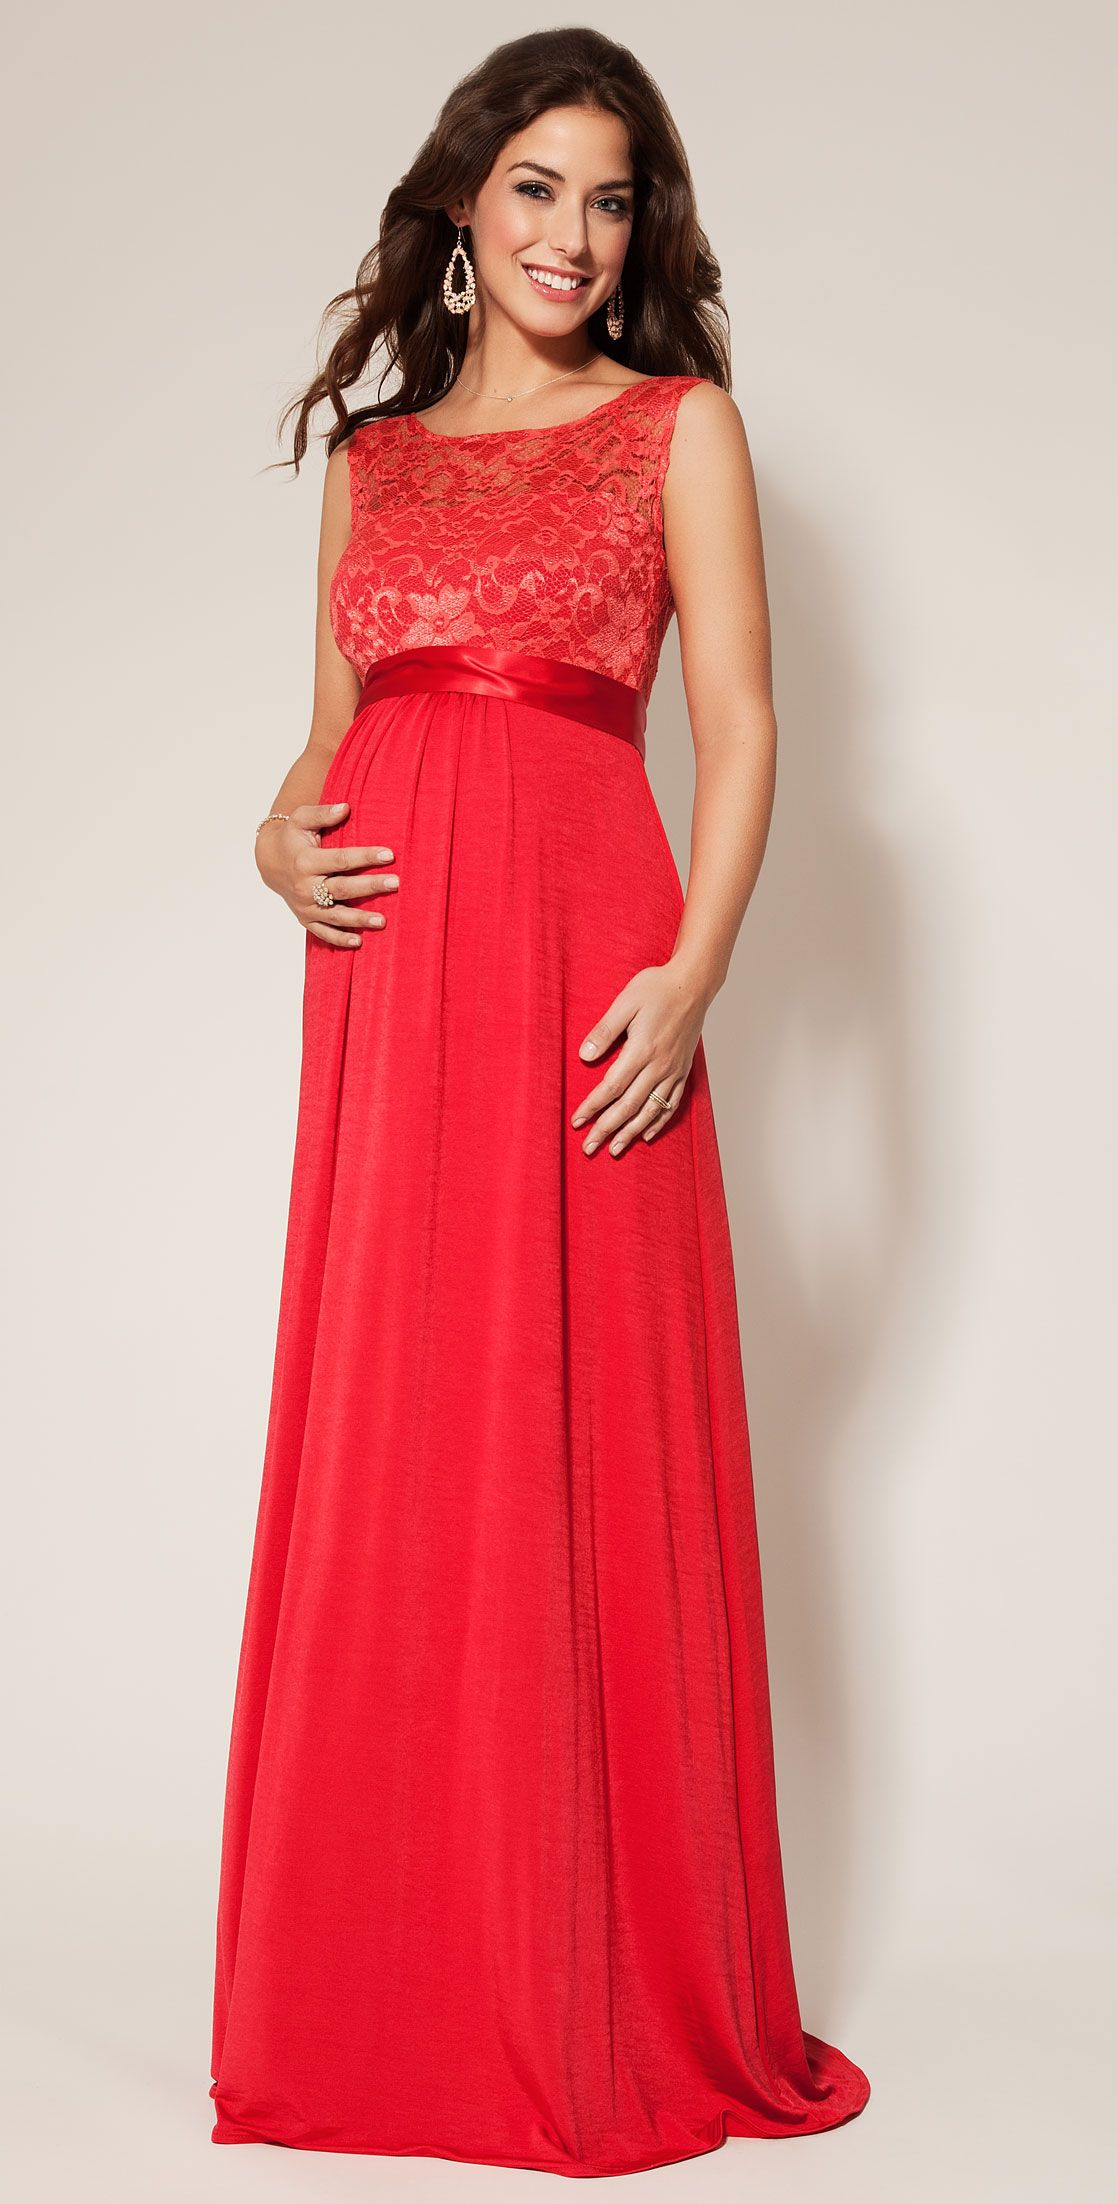 Valencia Gown Long | Tiffany rose, Party clothes and Maternity gowns